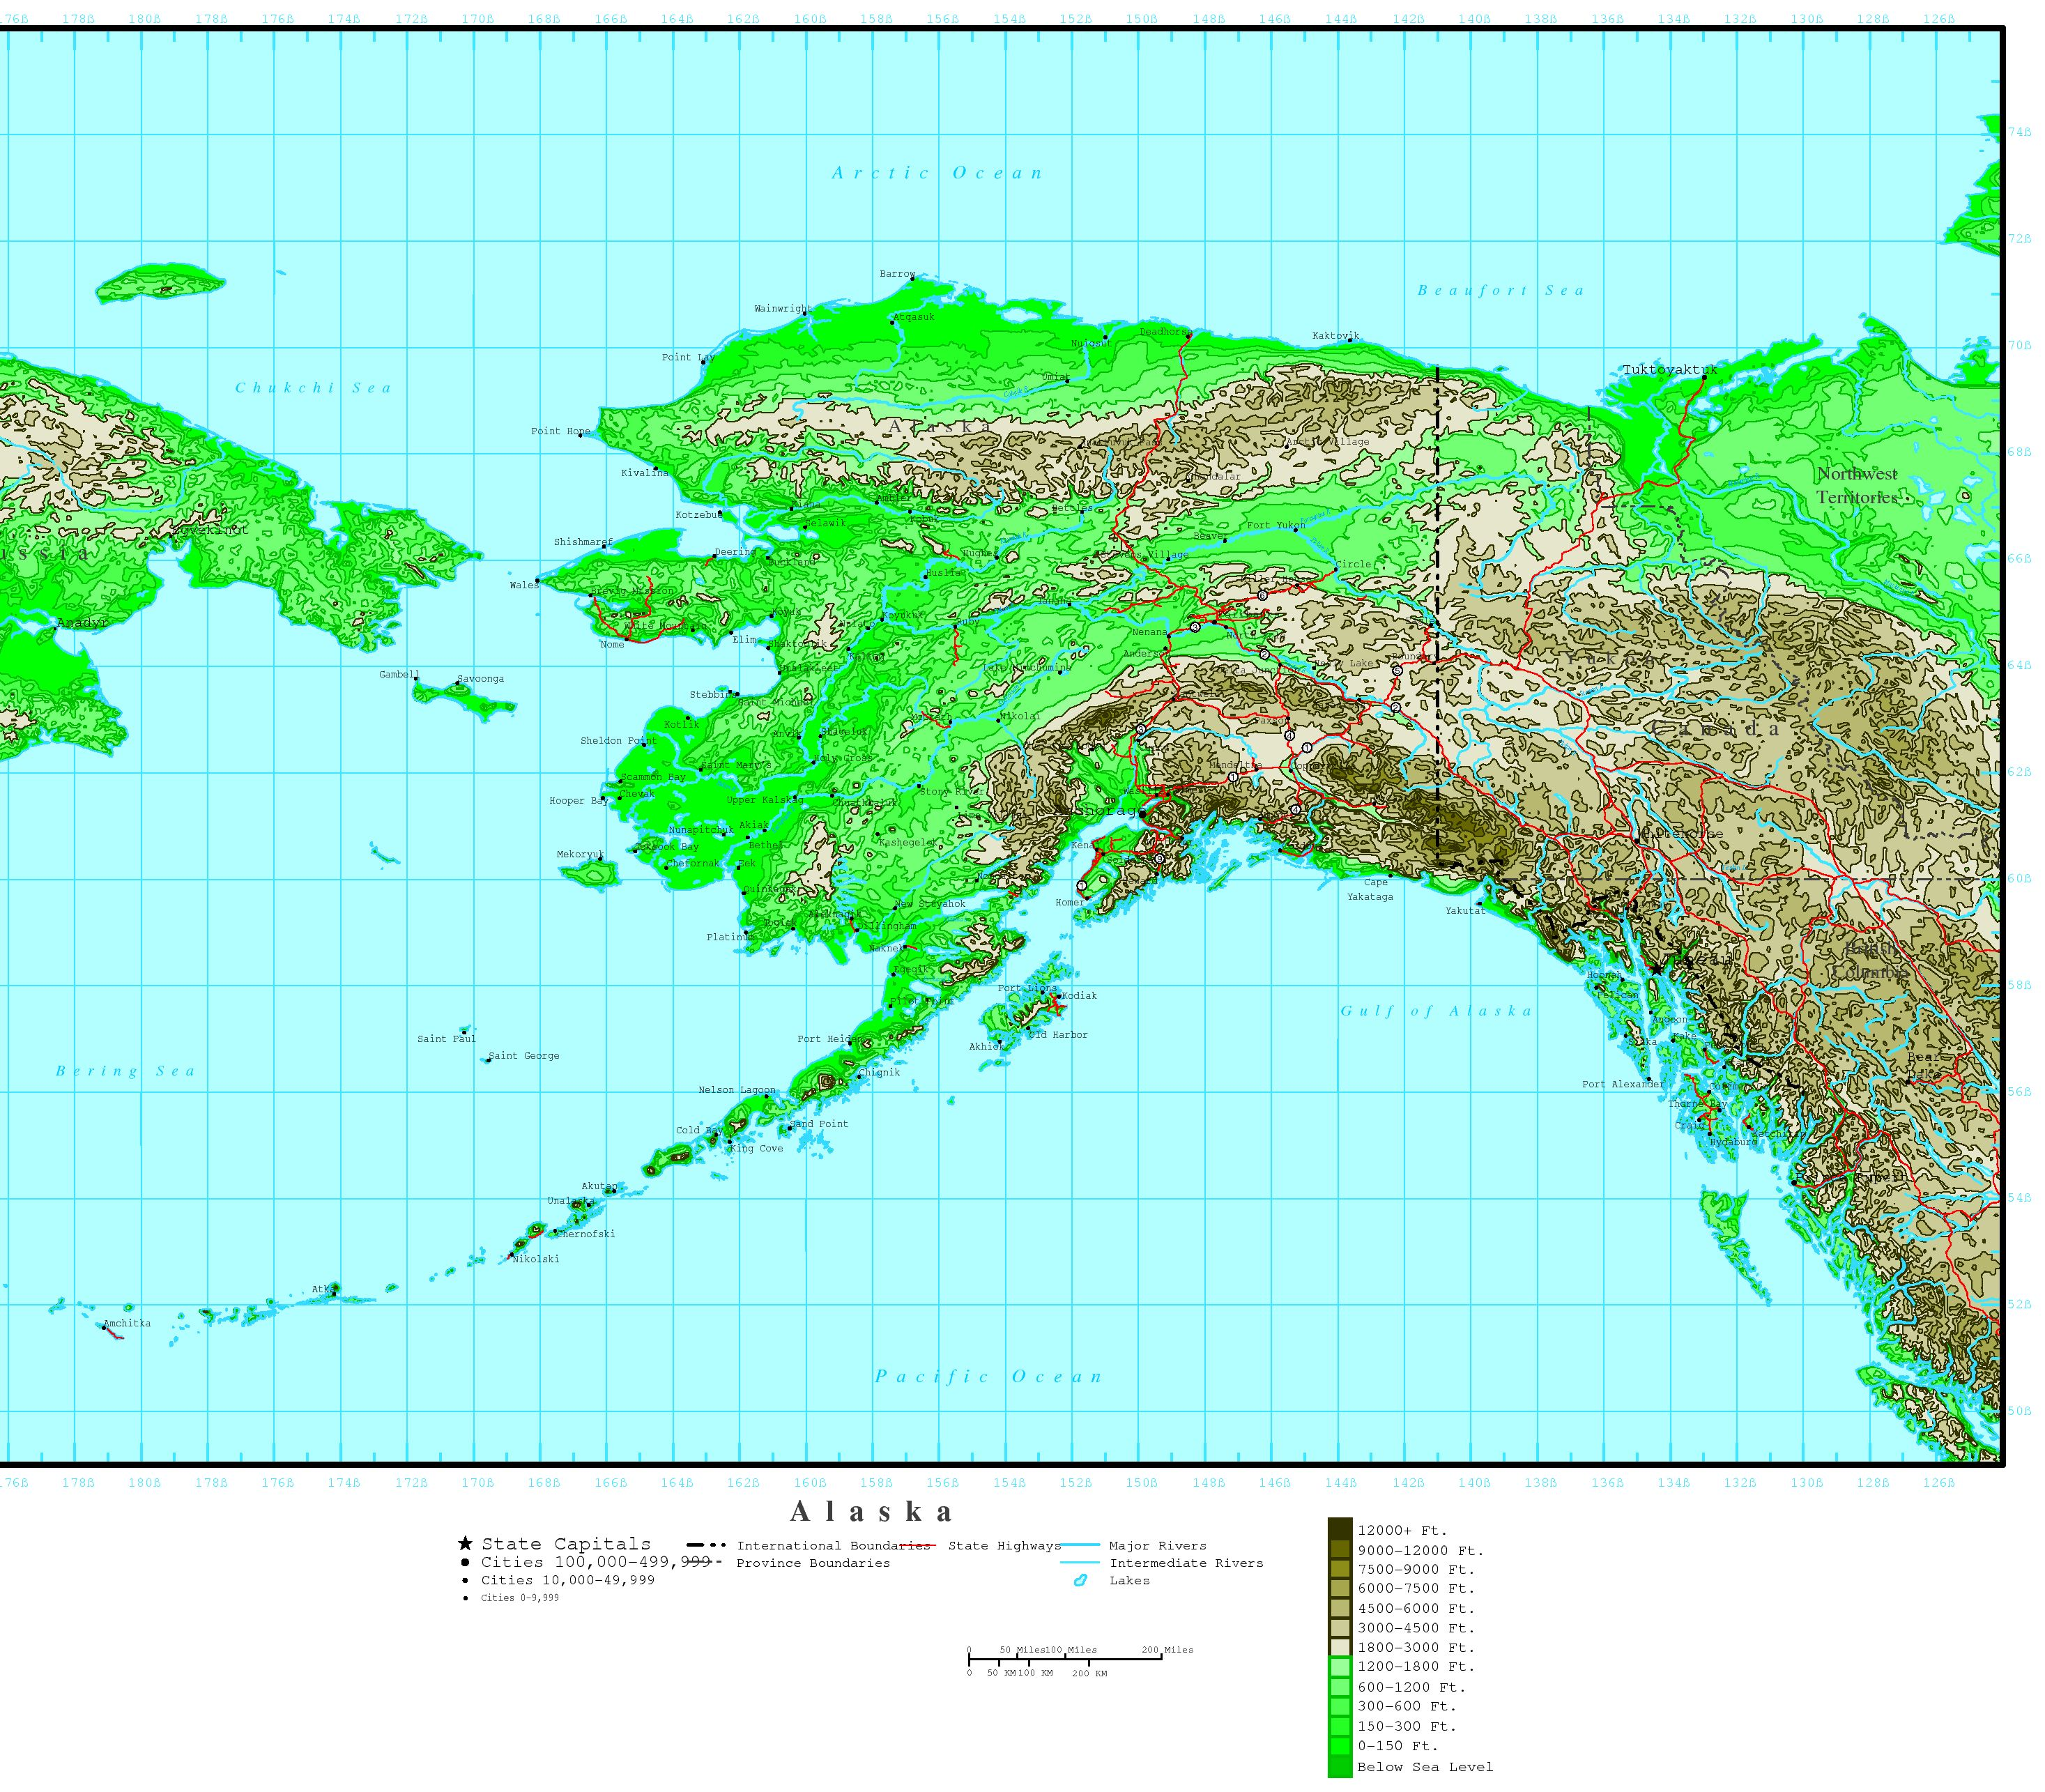 Alaska Elevation Map